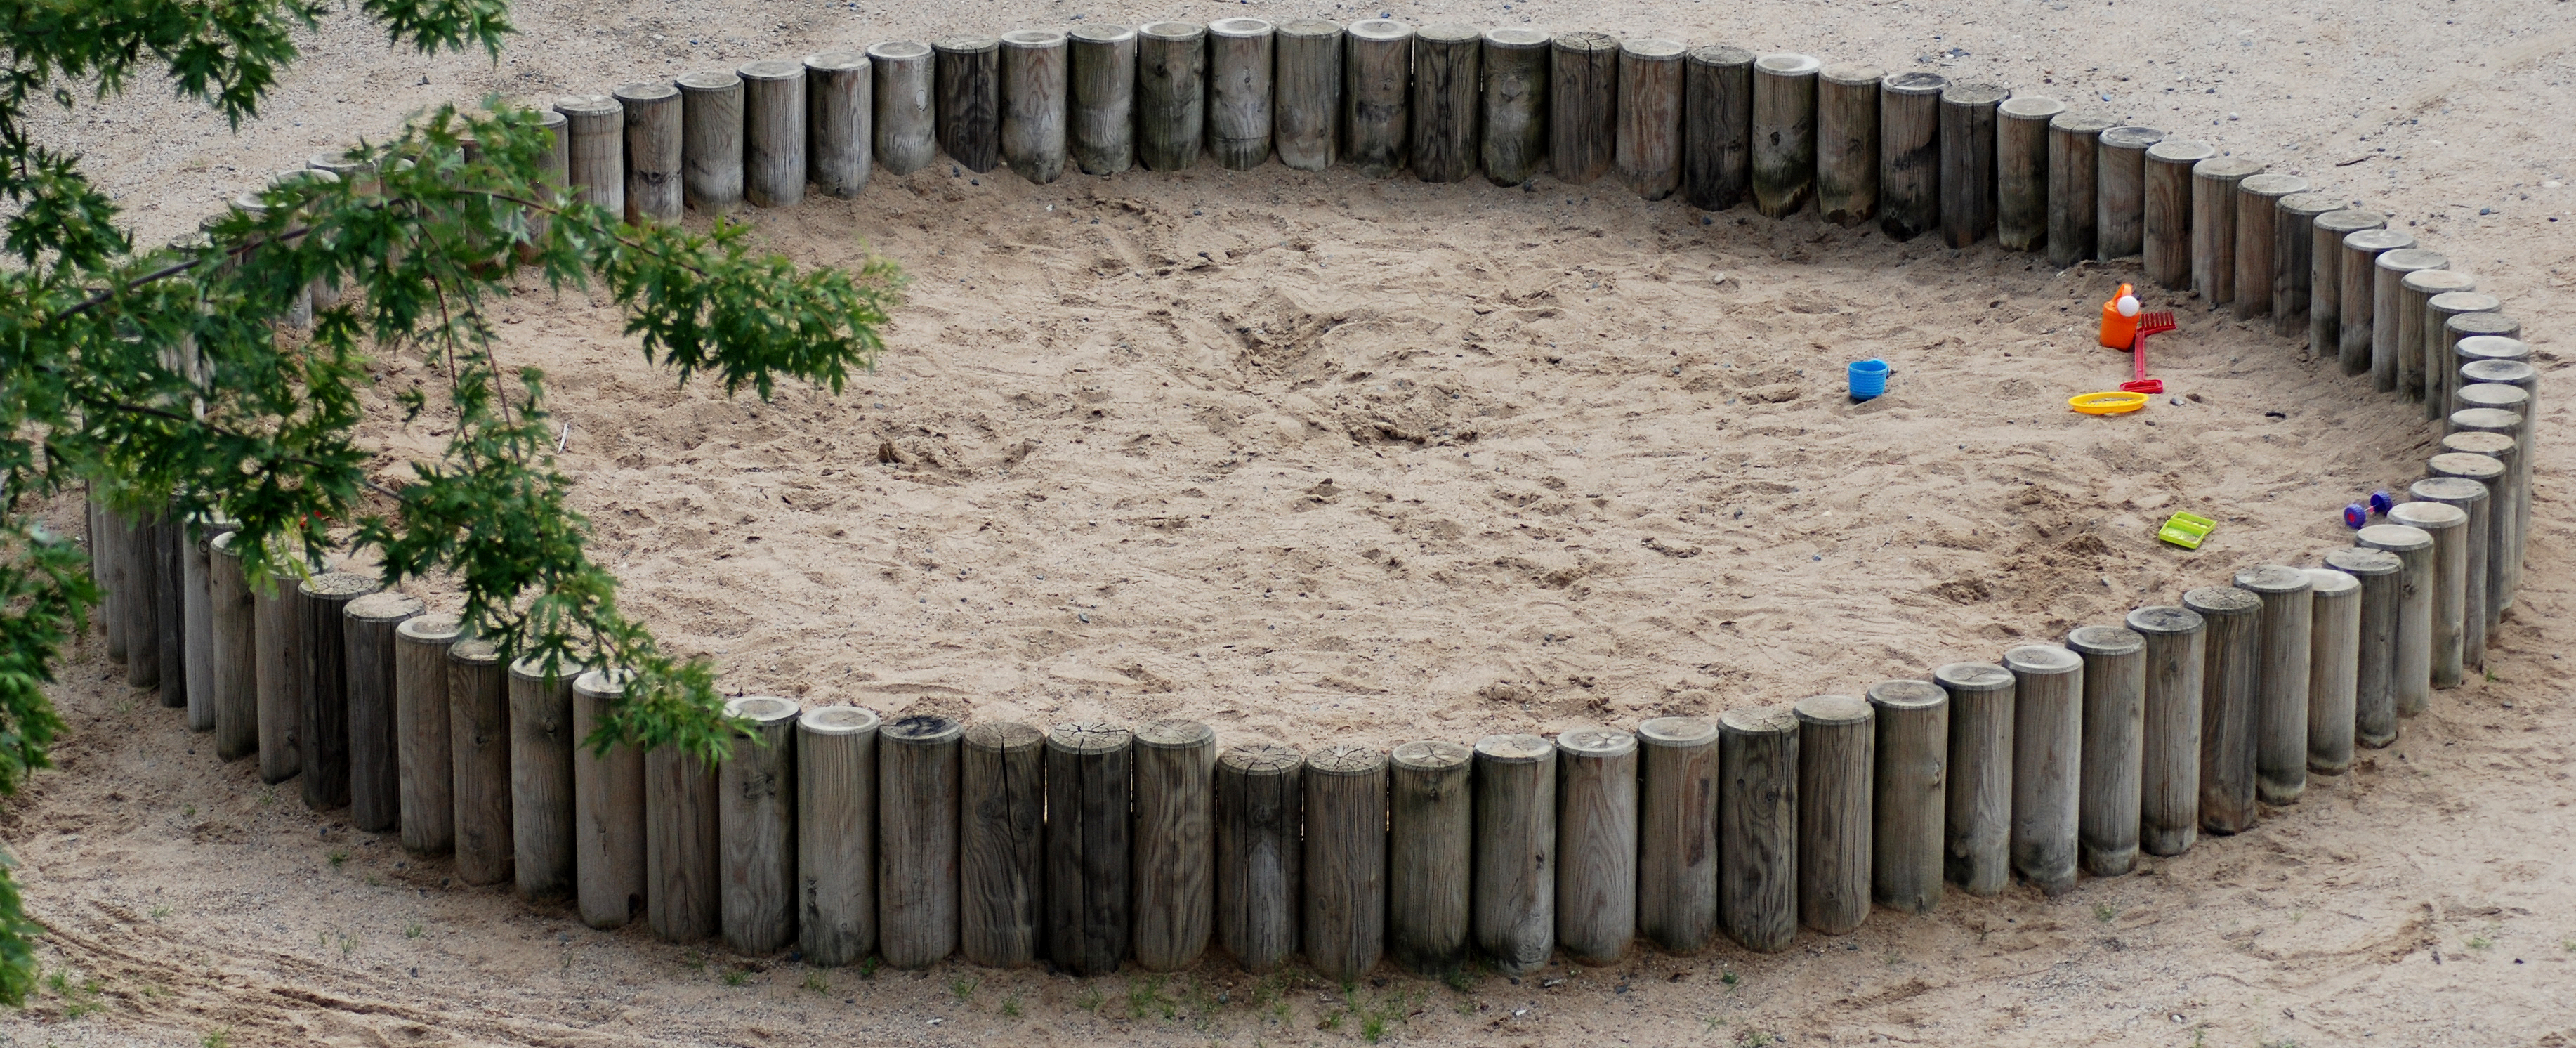 File Sandbox With Toys Jpg Wikimedia Commons